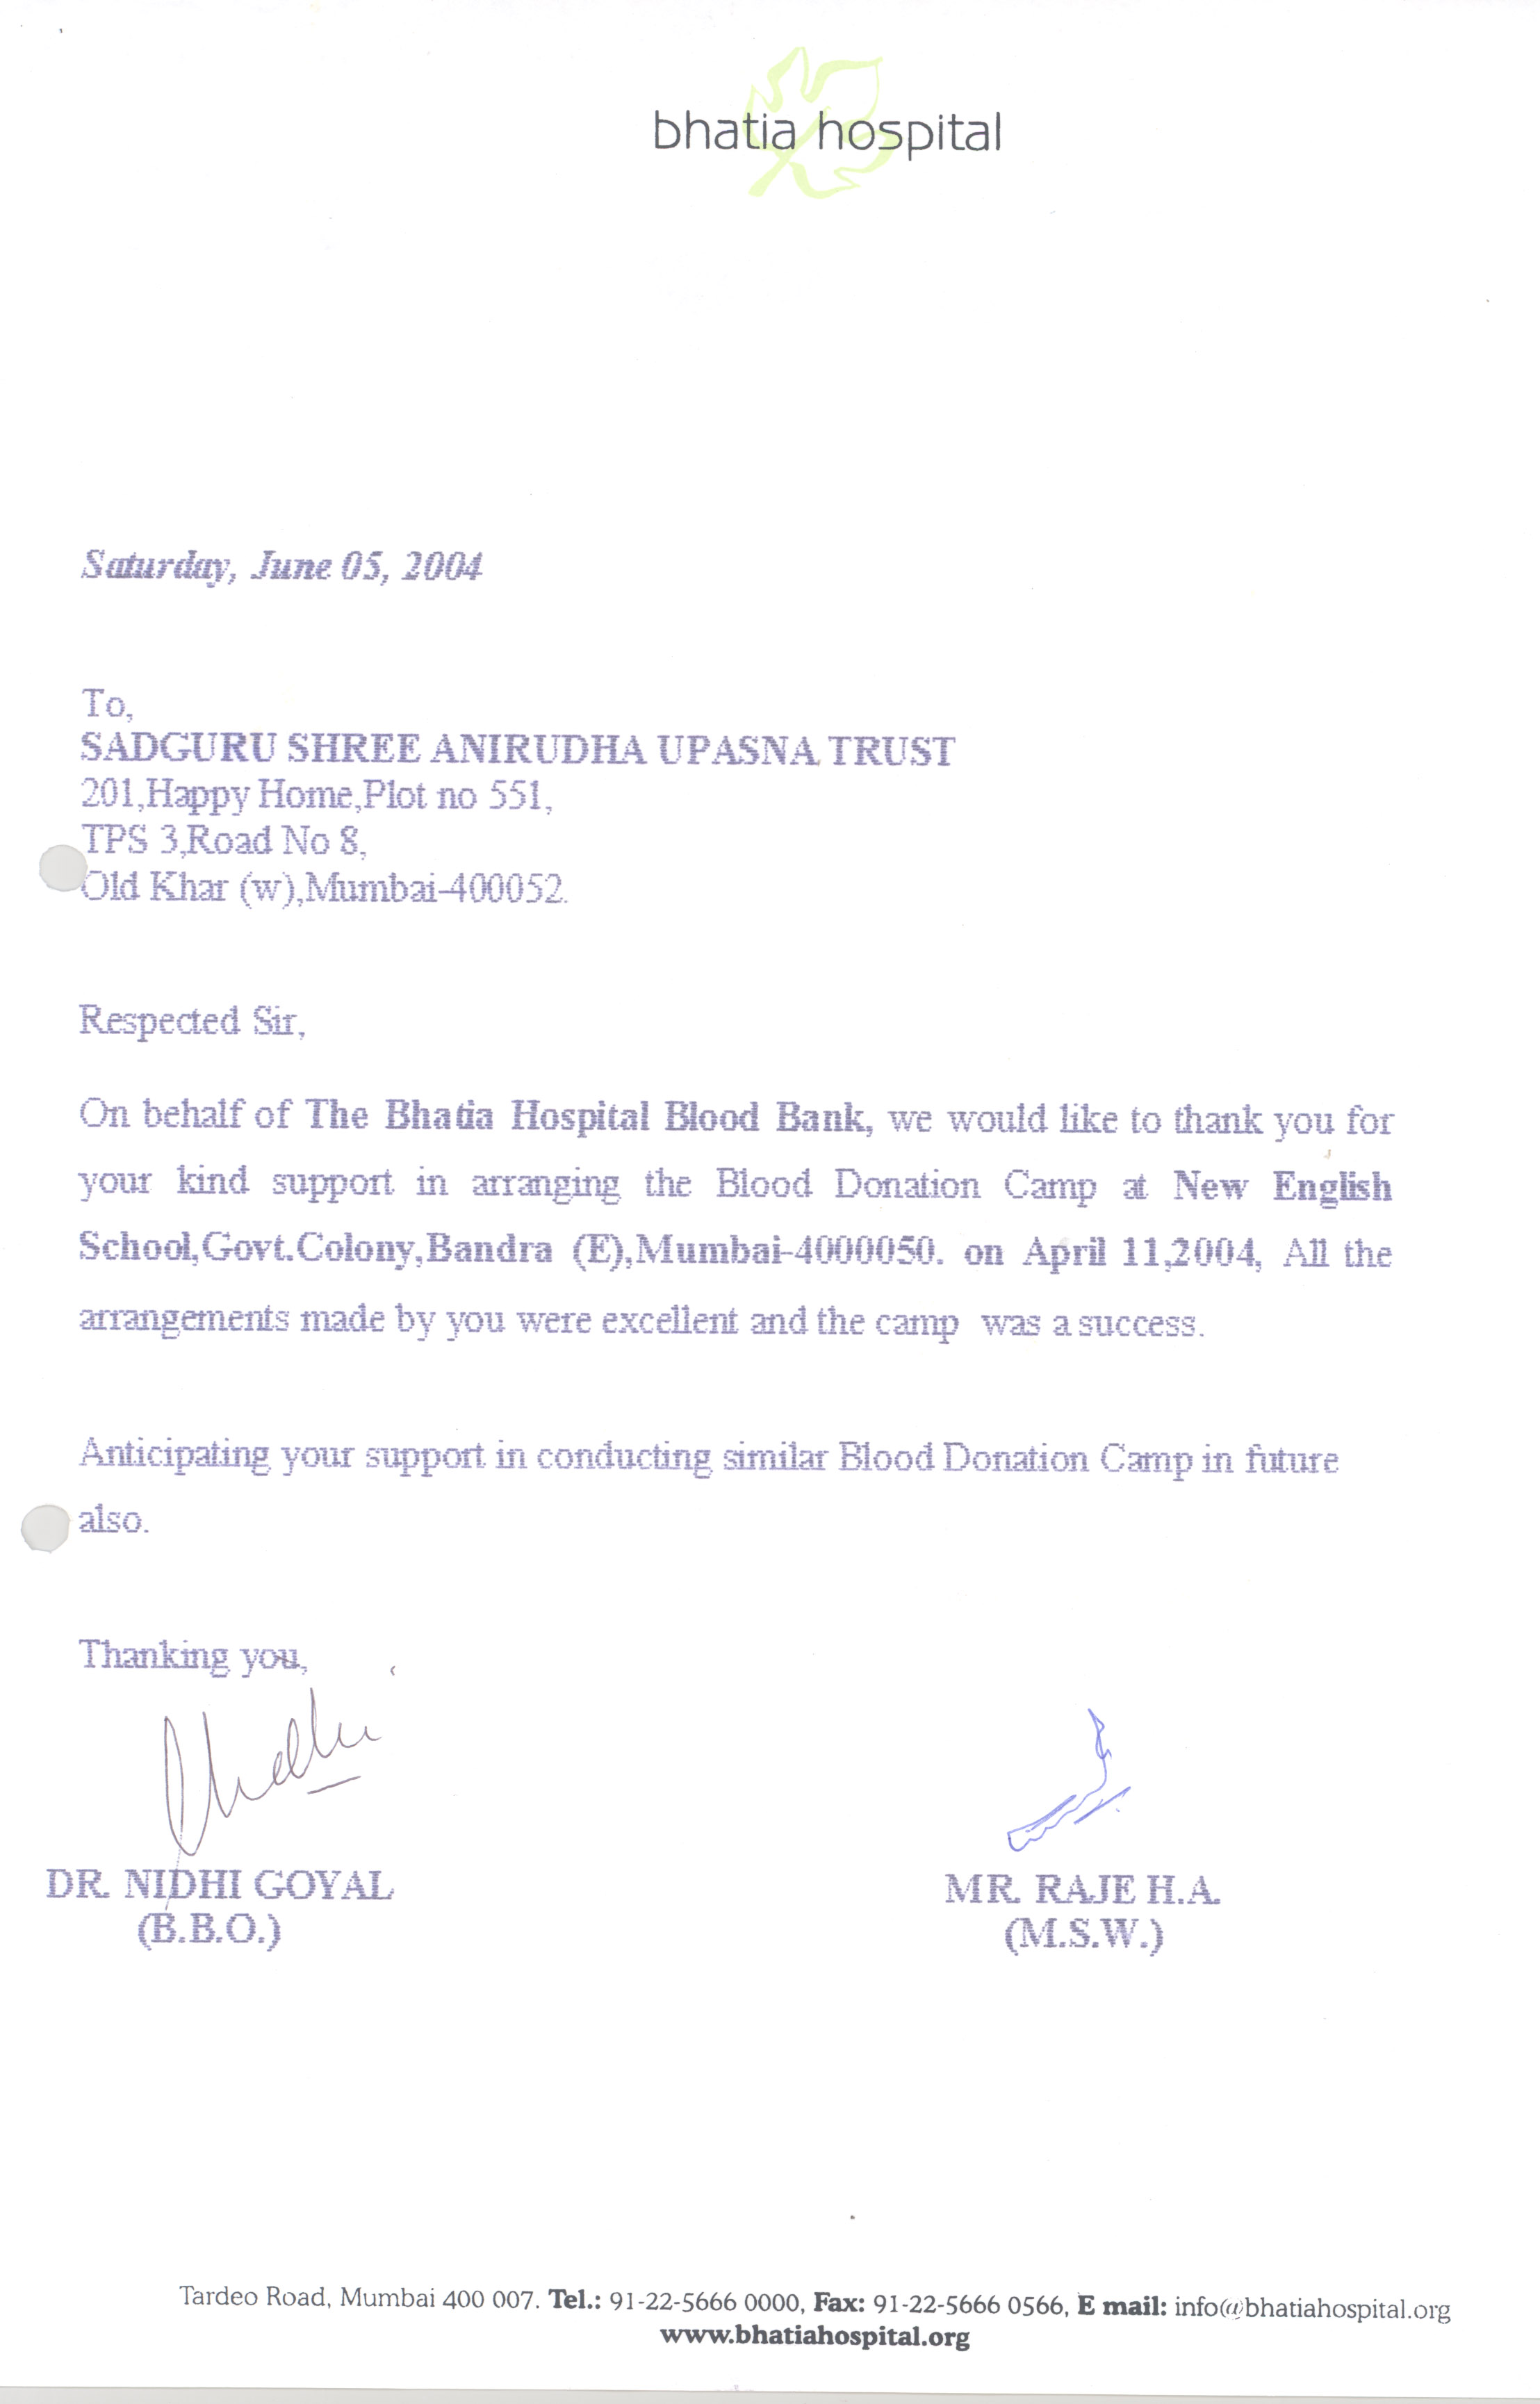 Appreciation letter blood donation camps shree aniruddha upasana appreciation letter from bhatia hospital 2004 for aniruddhafoundation compassion social thecheapjerseys Choice Image